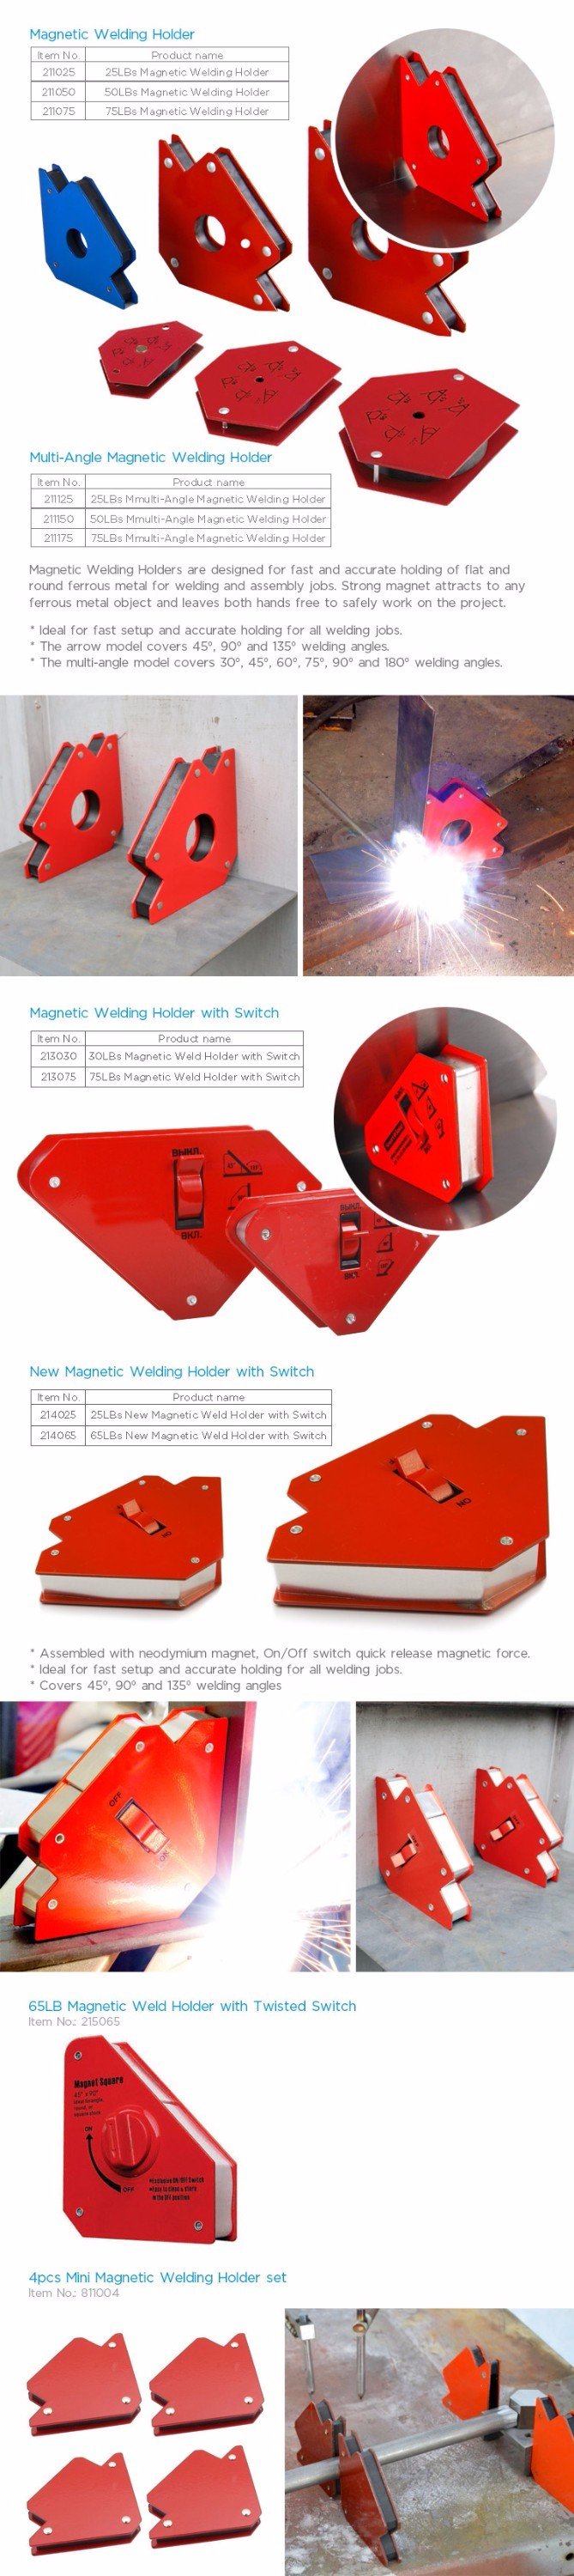 75 Lbs Arrow Magnetic Welding Holder/ Magnetic Welding Positioner/Welding Fixer with on off switch